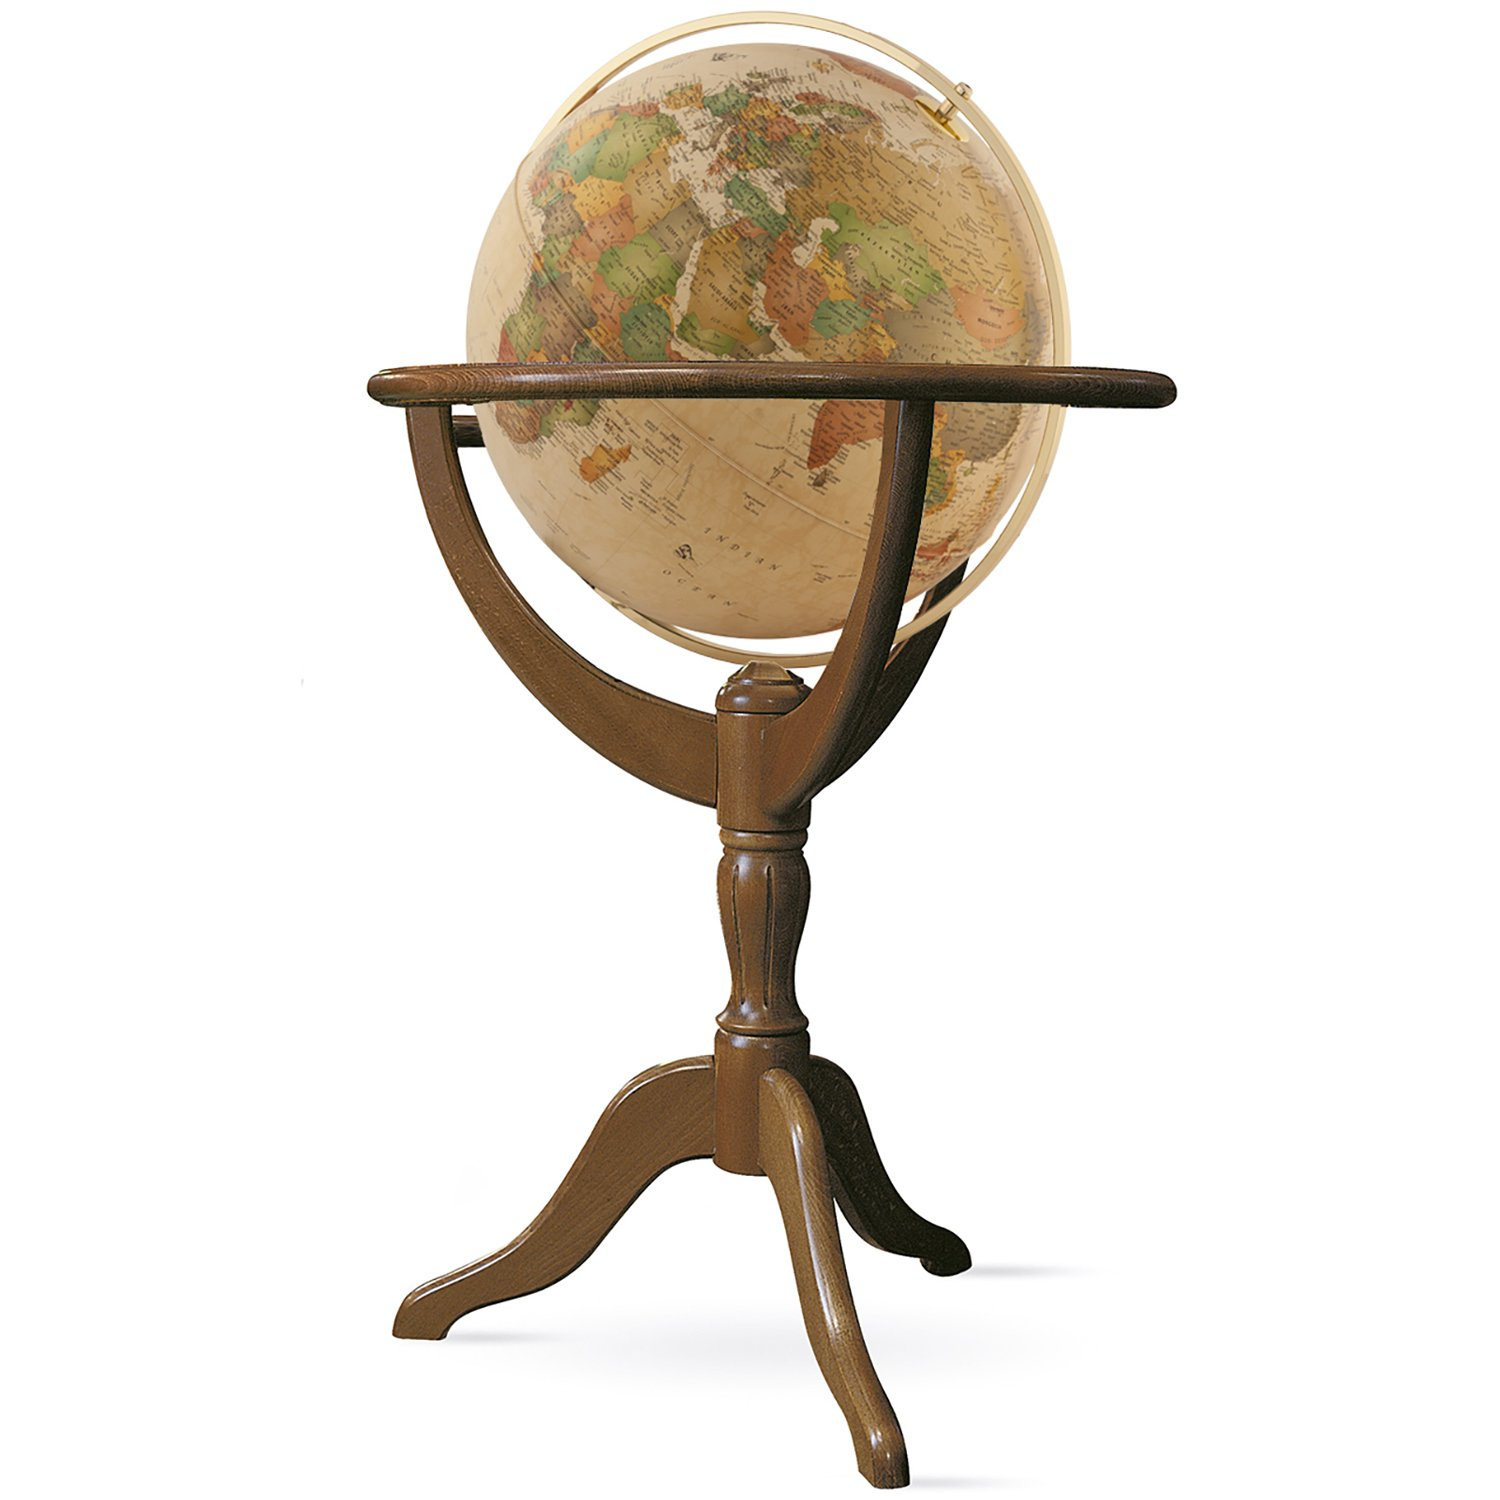 Waypoint Geographic Geneva 20 inch Diameter Political Landmass & Classic Antique Oceans Illuminated UP-TO-DATE Floor Standing Globe Metal Meridian-Duncan Phyfe Style 3-Leg Wood Stand (Classic Antique)